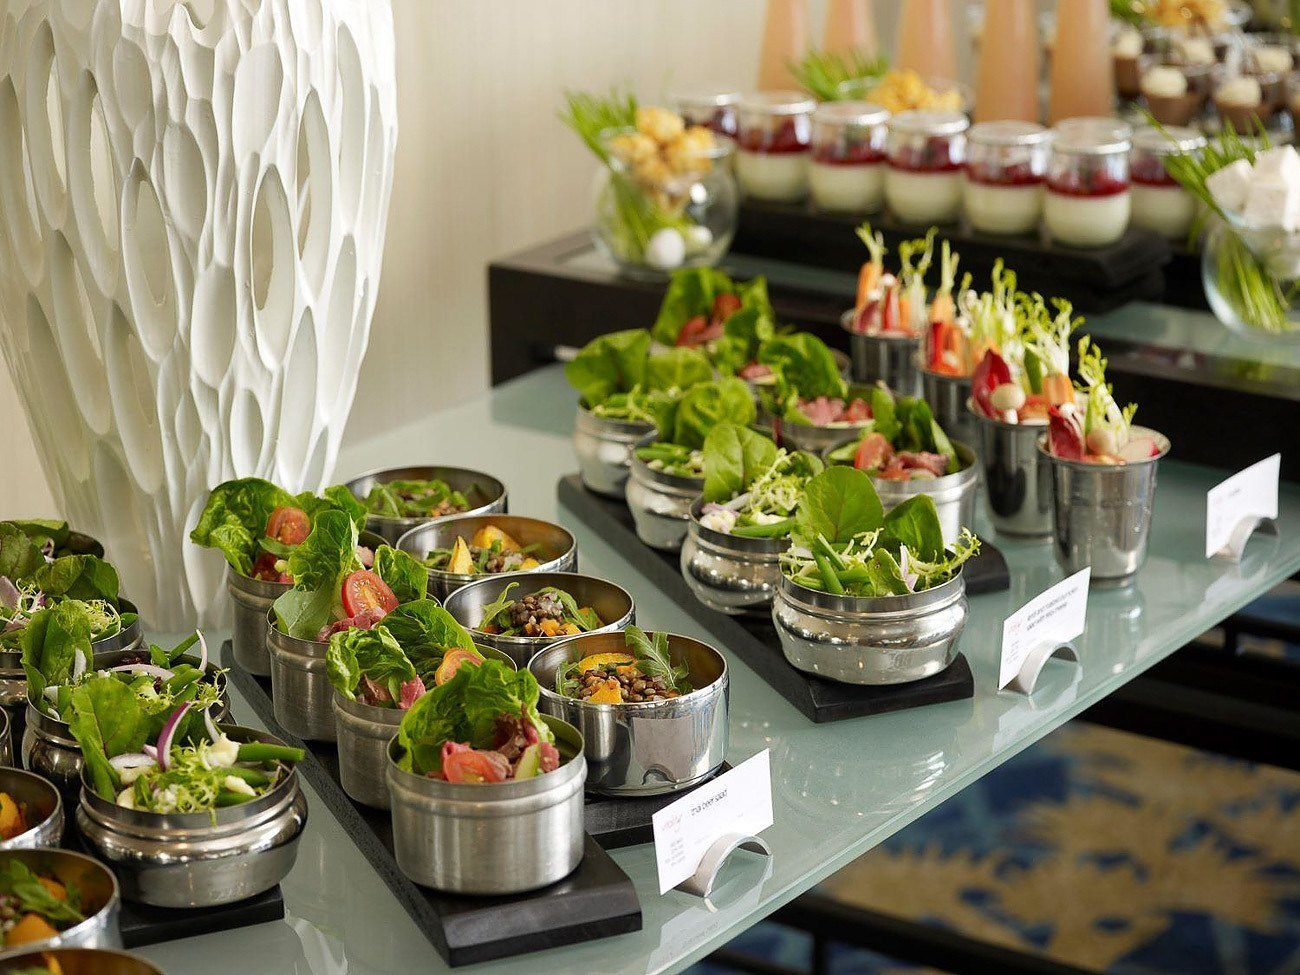 Healthy dining from the Vitality offerings at Swissotel